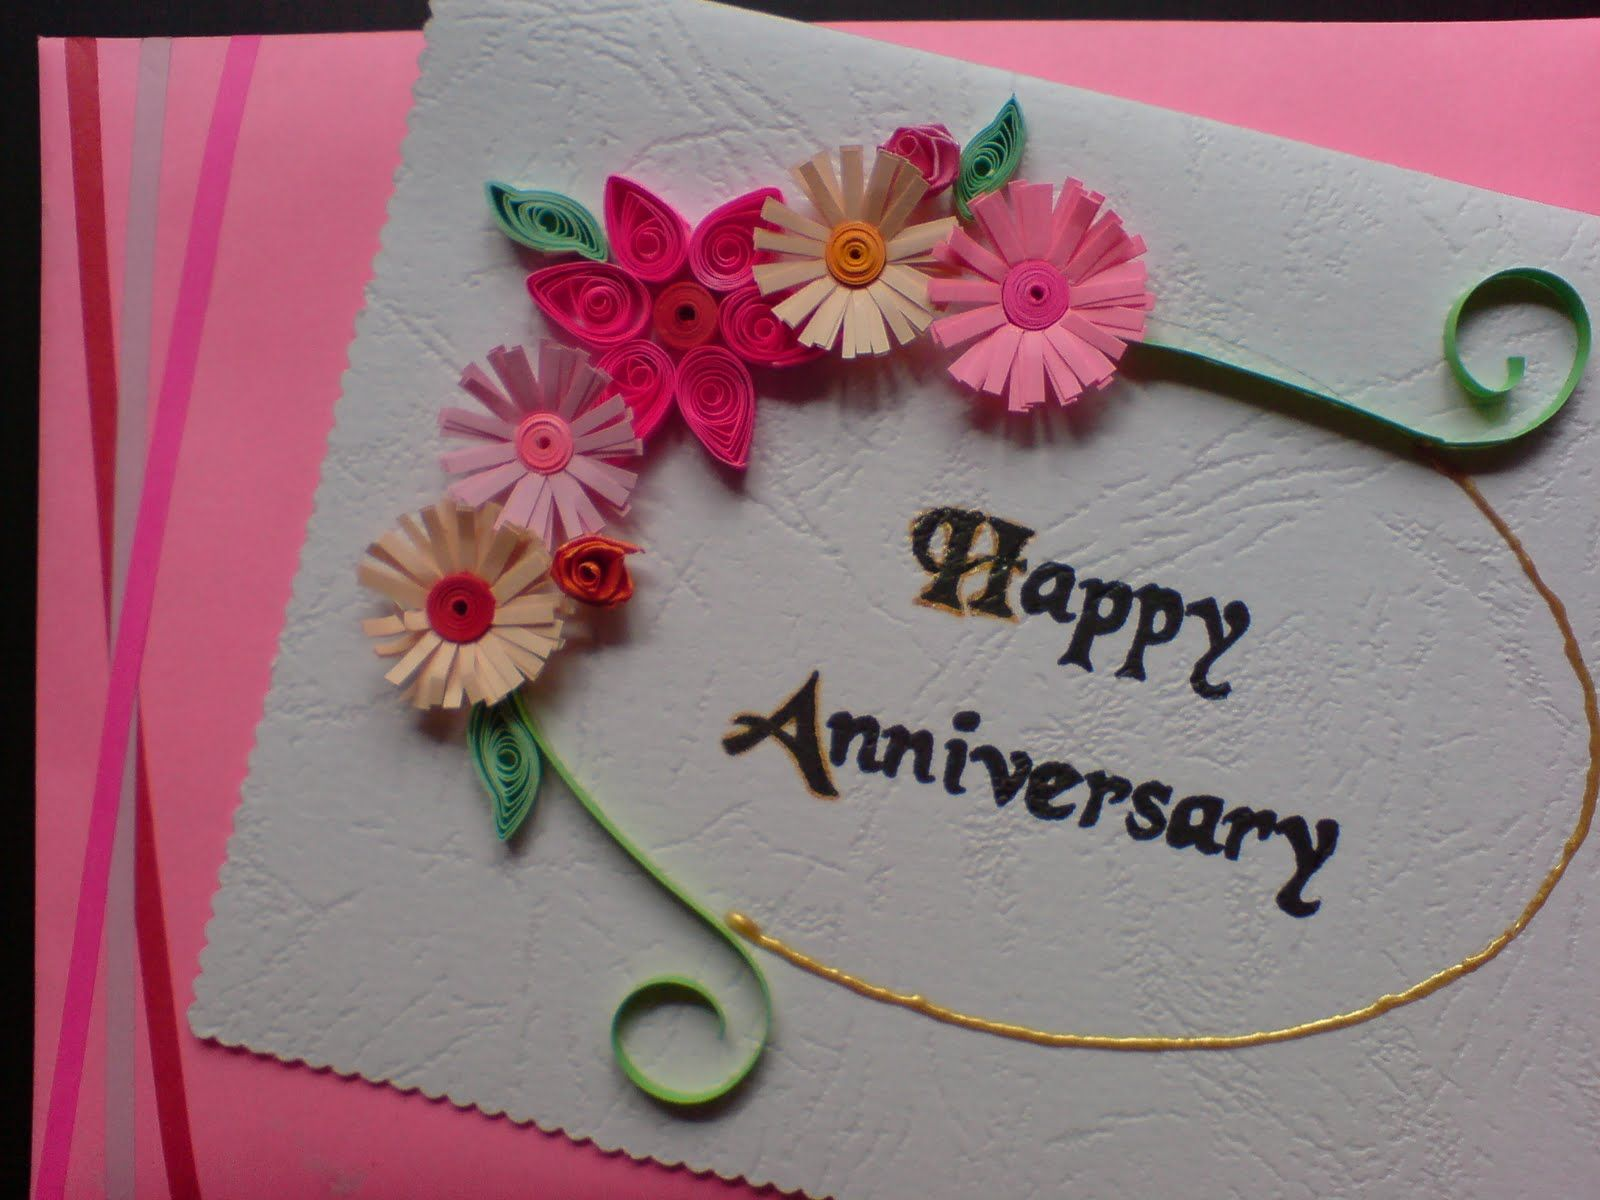 Homemade anniversary card ideas for boyfriend google search